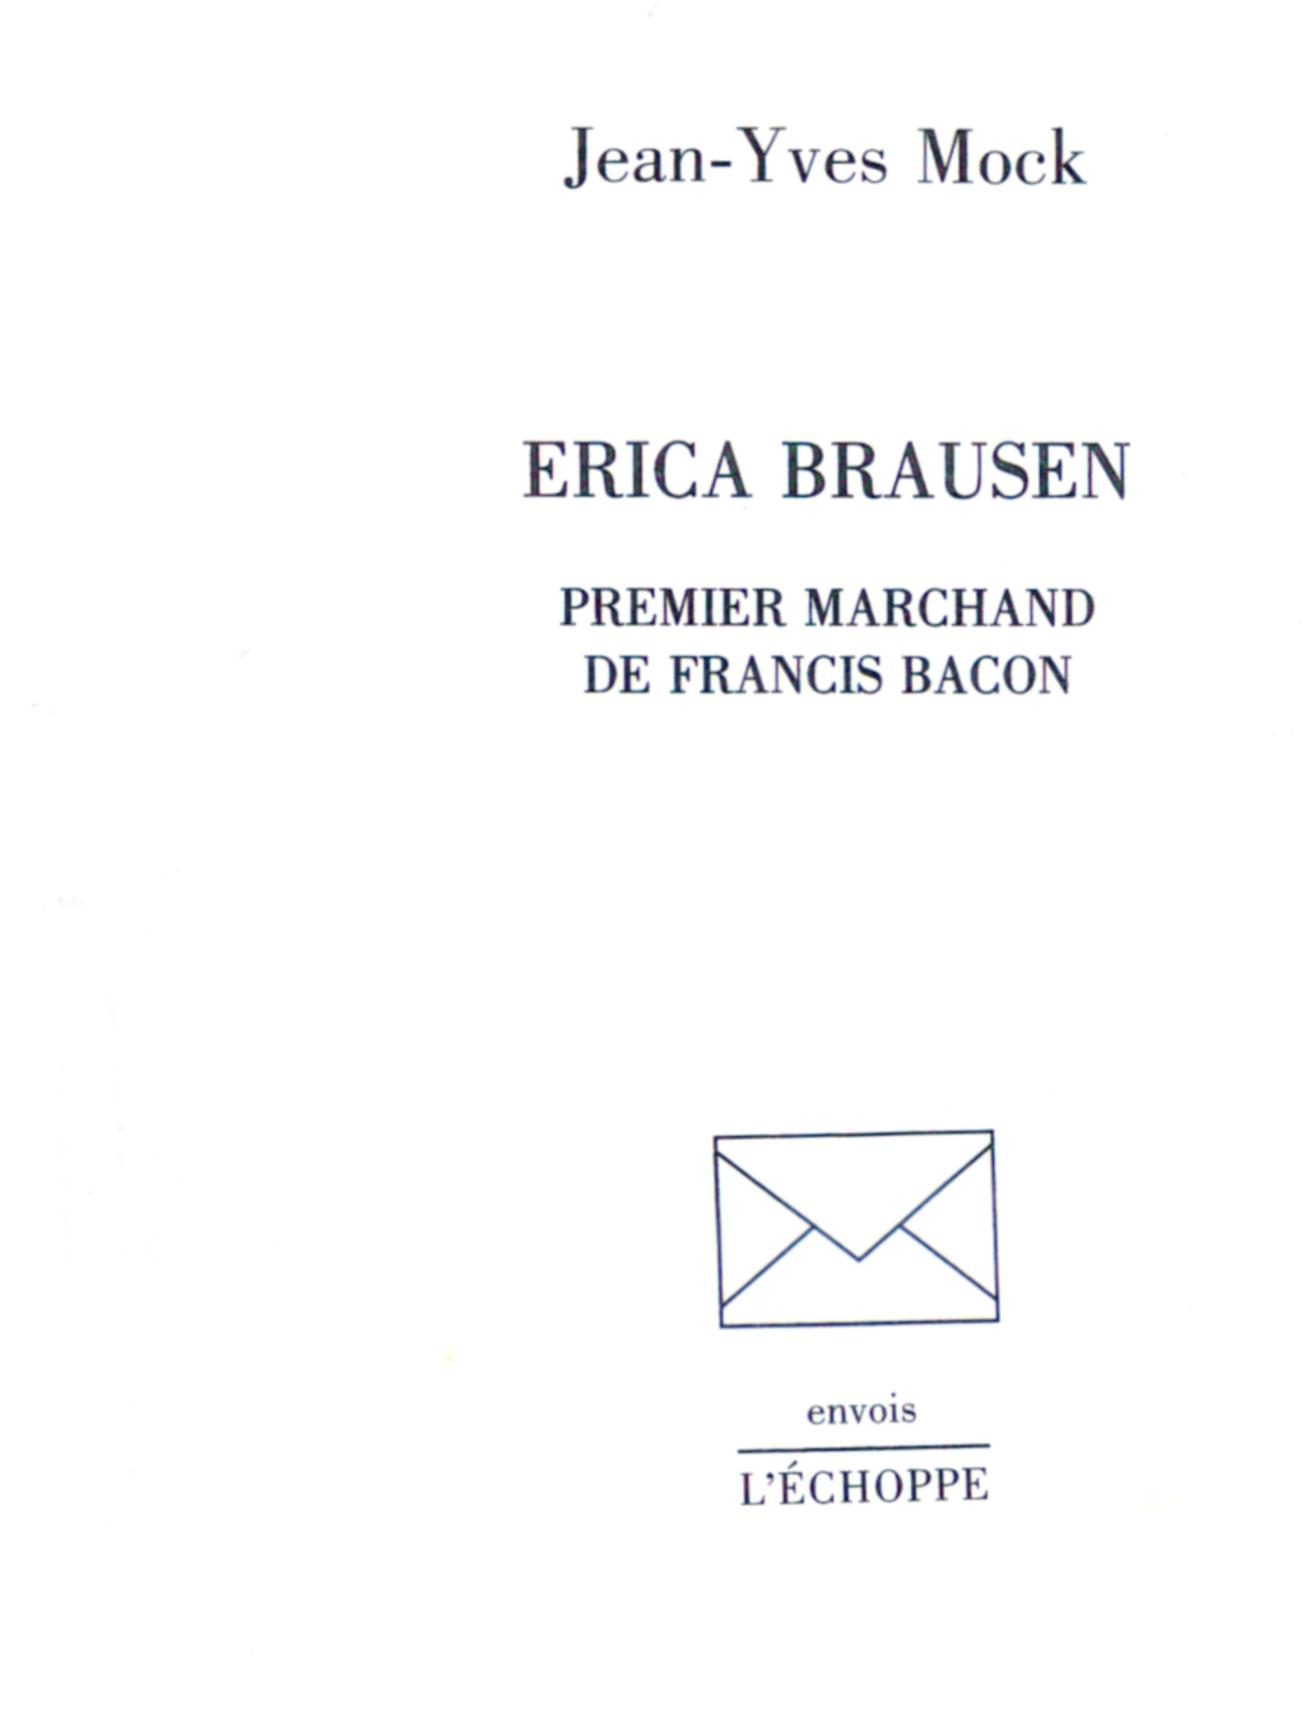 title page of book on Erica Brausen